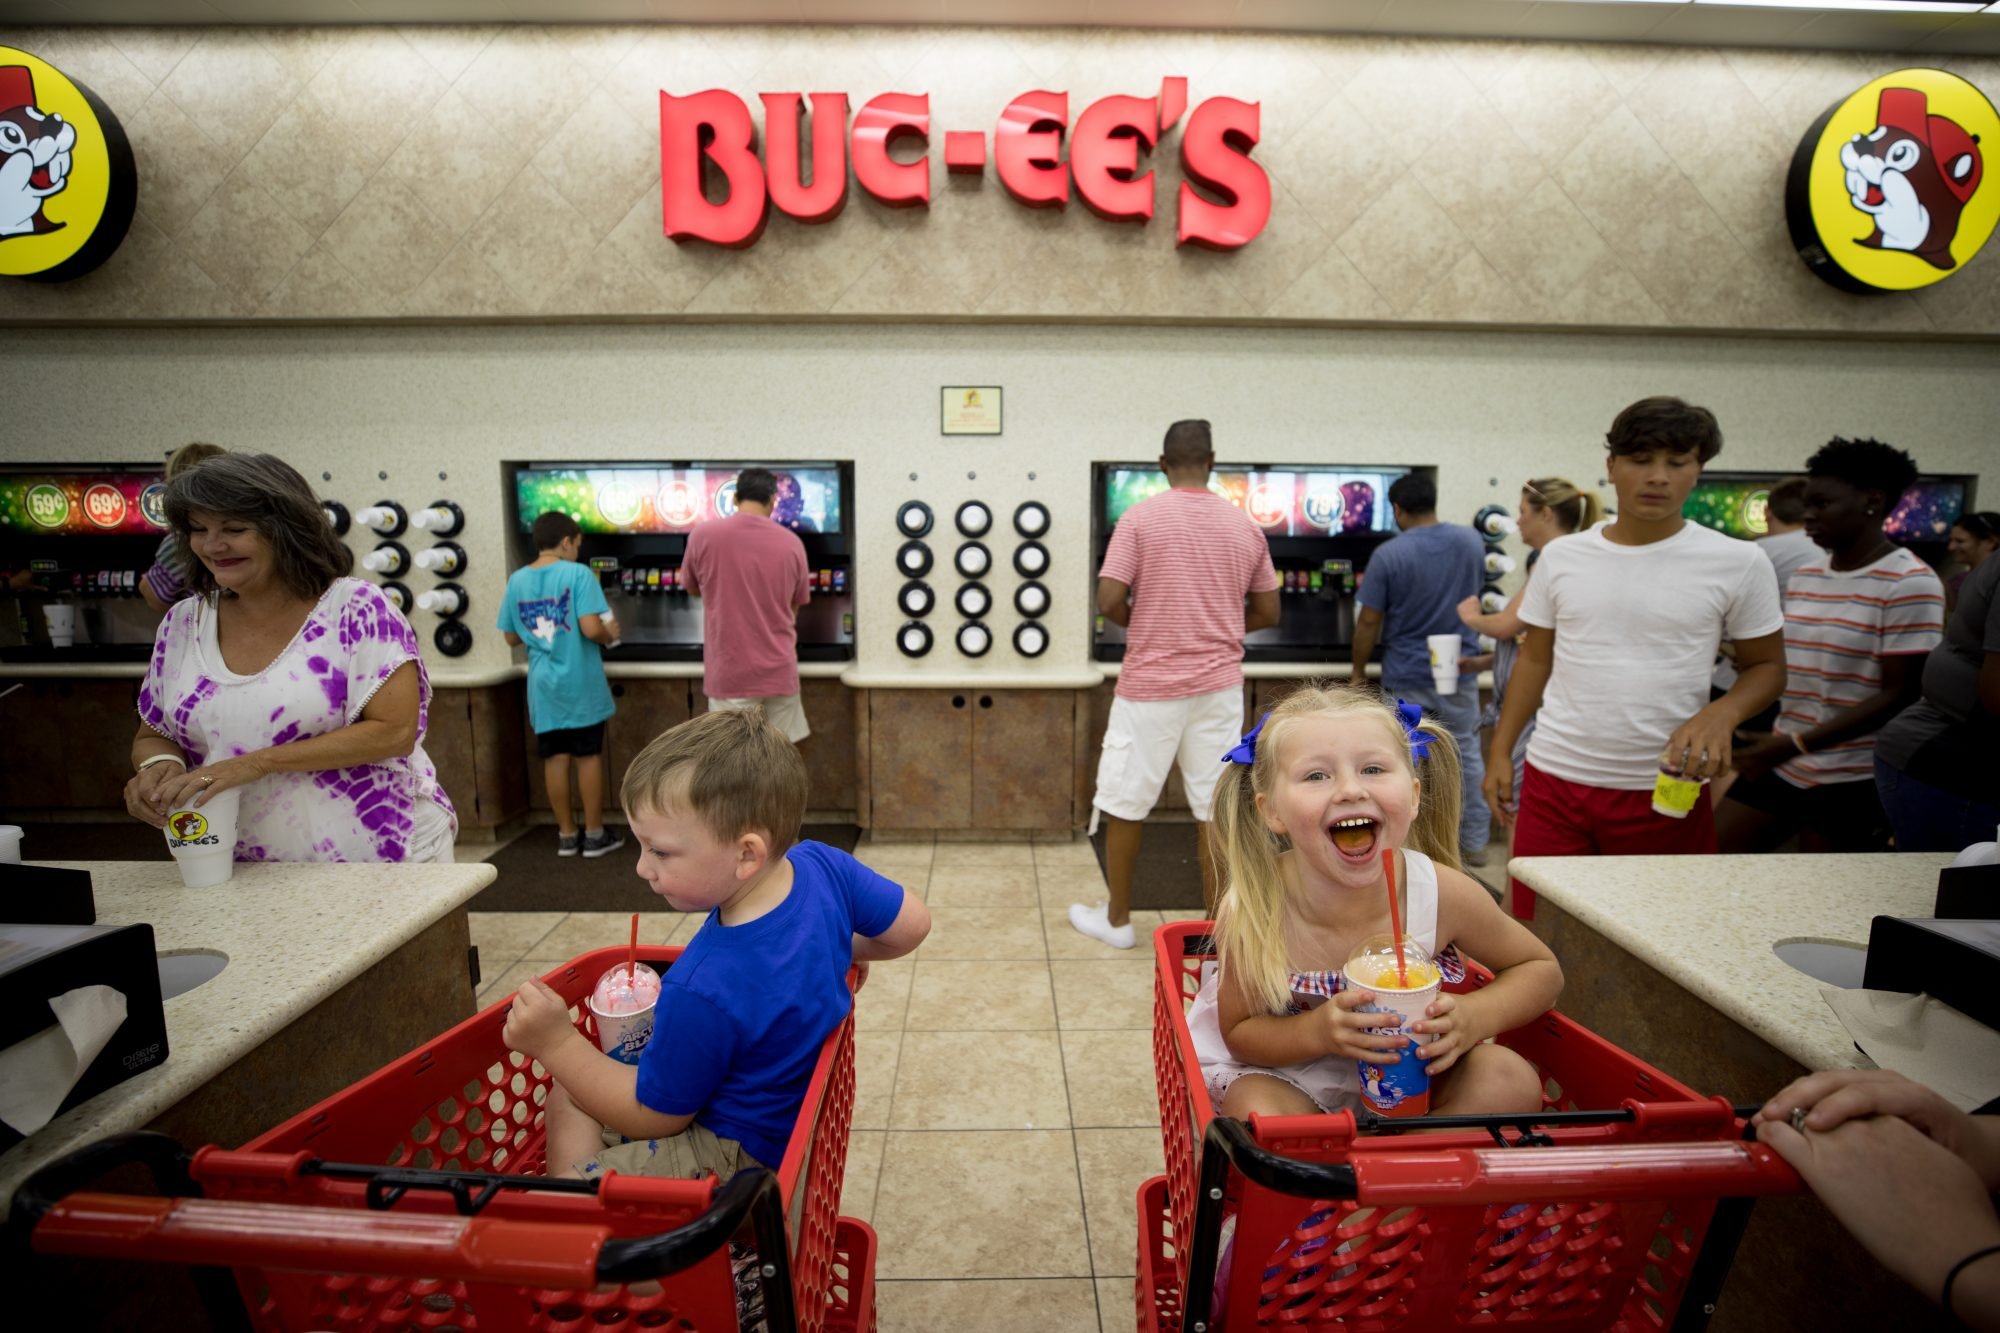 Kids in Shopping Carts at Buc-ee's